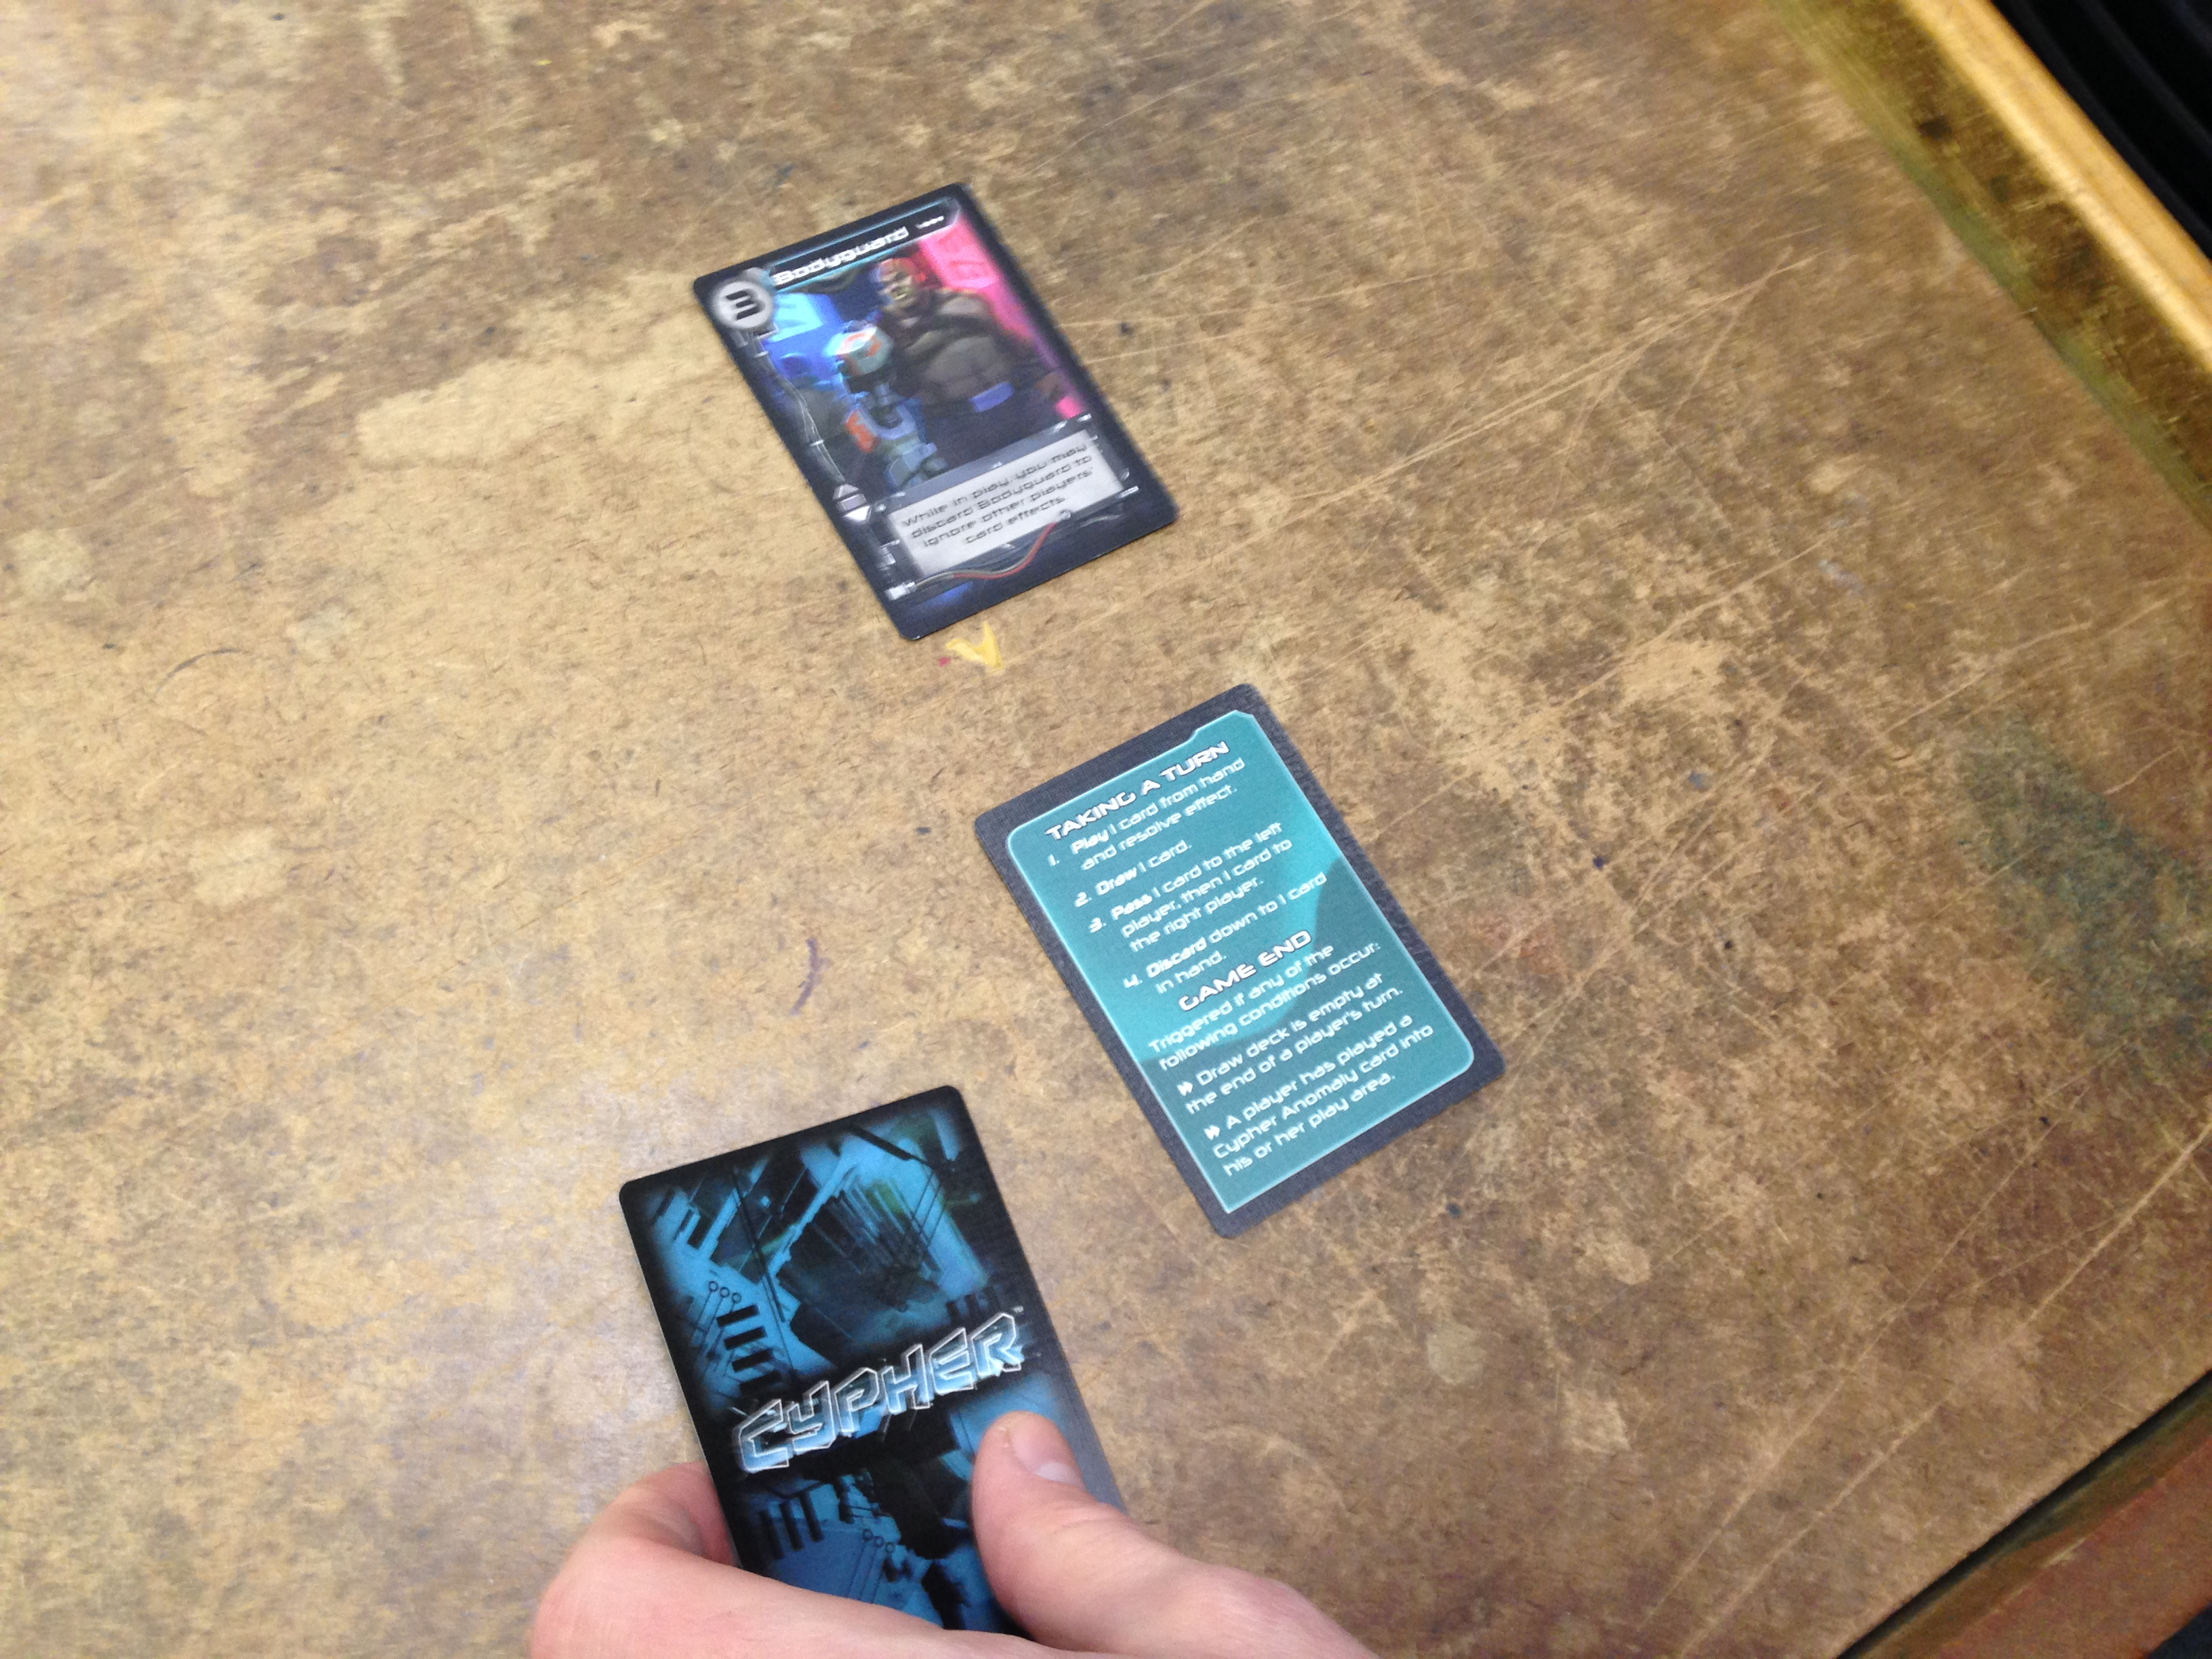 Passing cards is an important part of the gameplay.